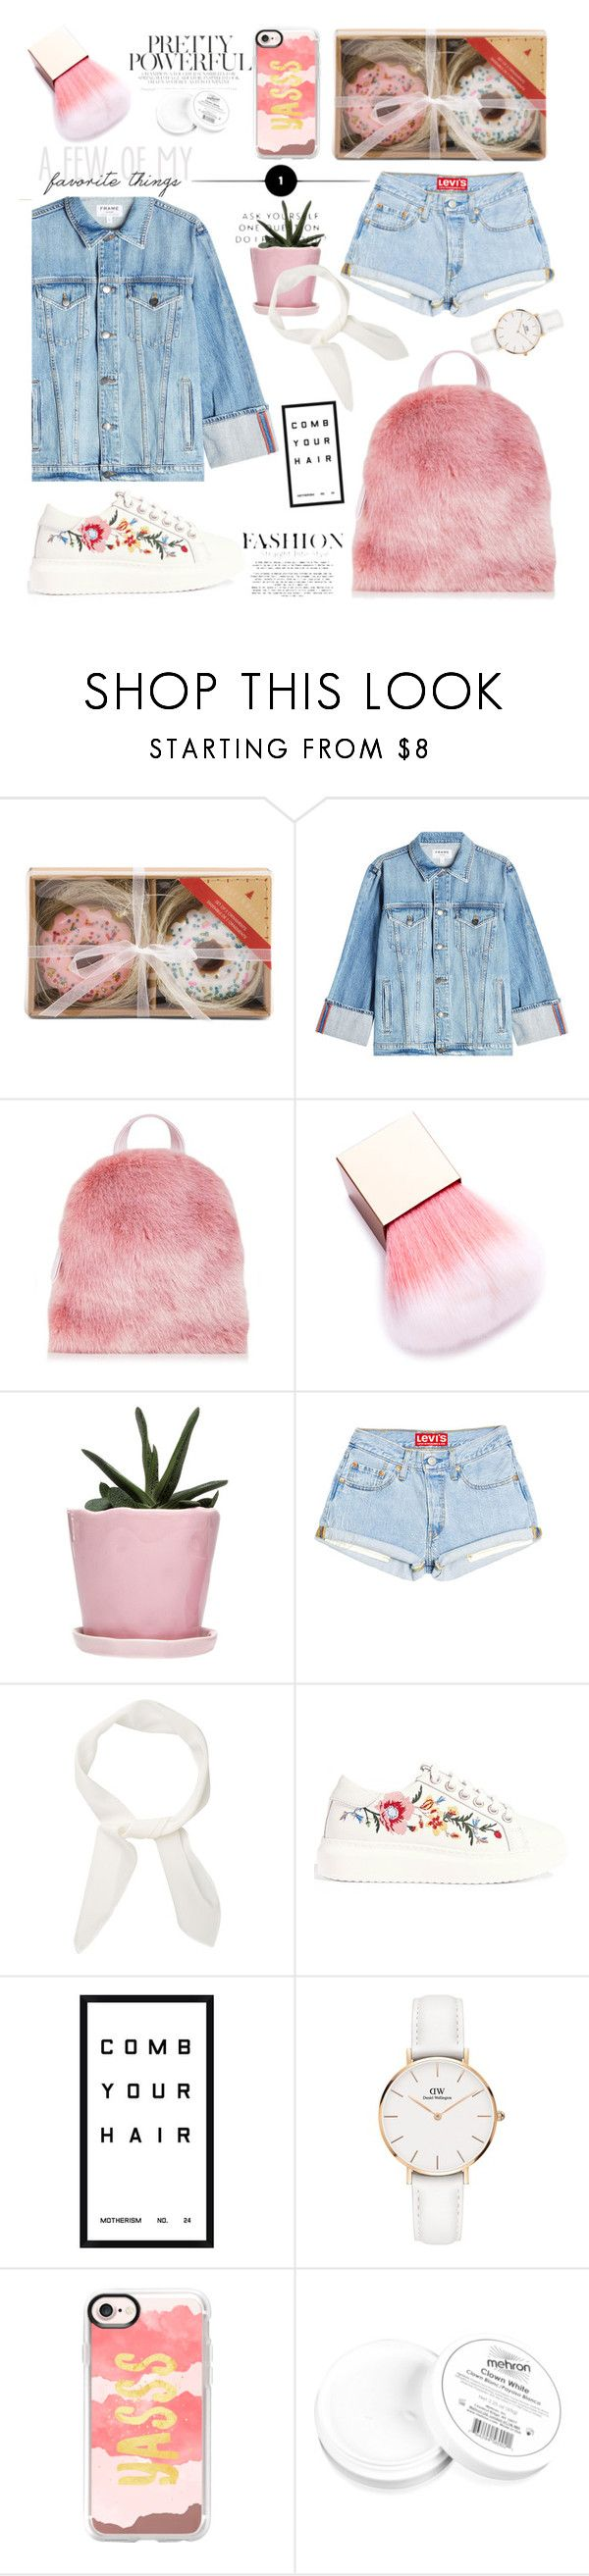 """""""#253"""" by thuhanguyen-1712 ❤ liked on Polyvore featuring Frame, Dot & Bo, Chloé, Karen Millen, Pottery Barn, Daniel Wellington, Casetify and Mehron"""